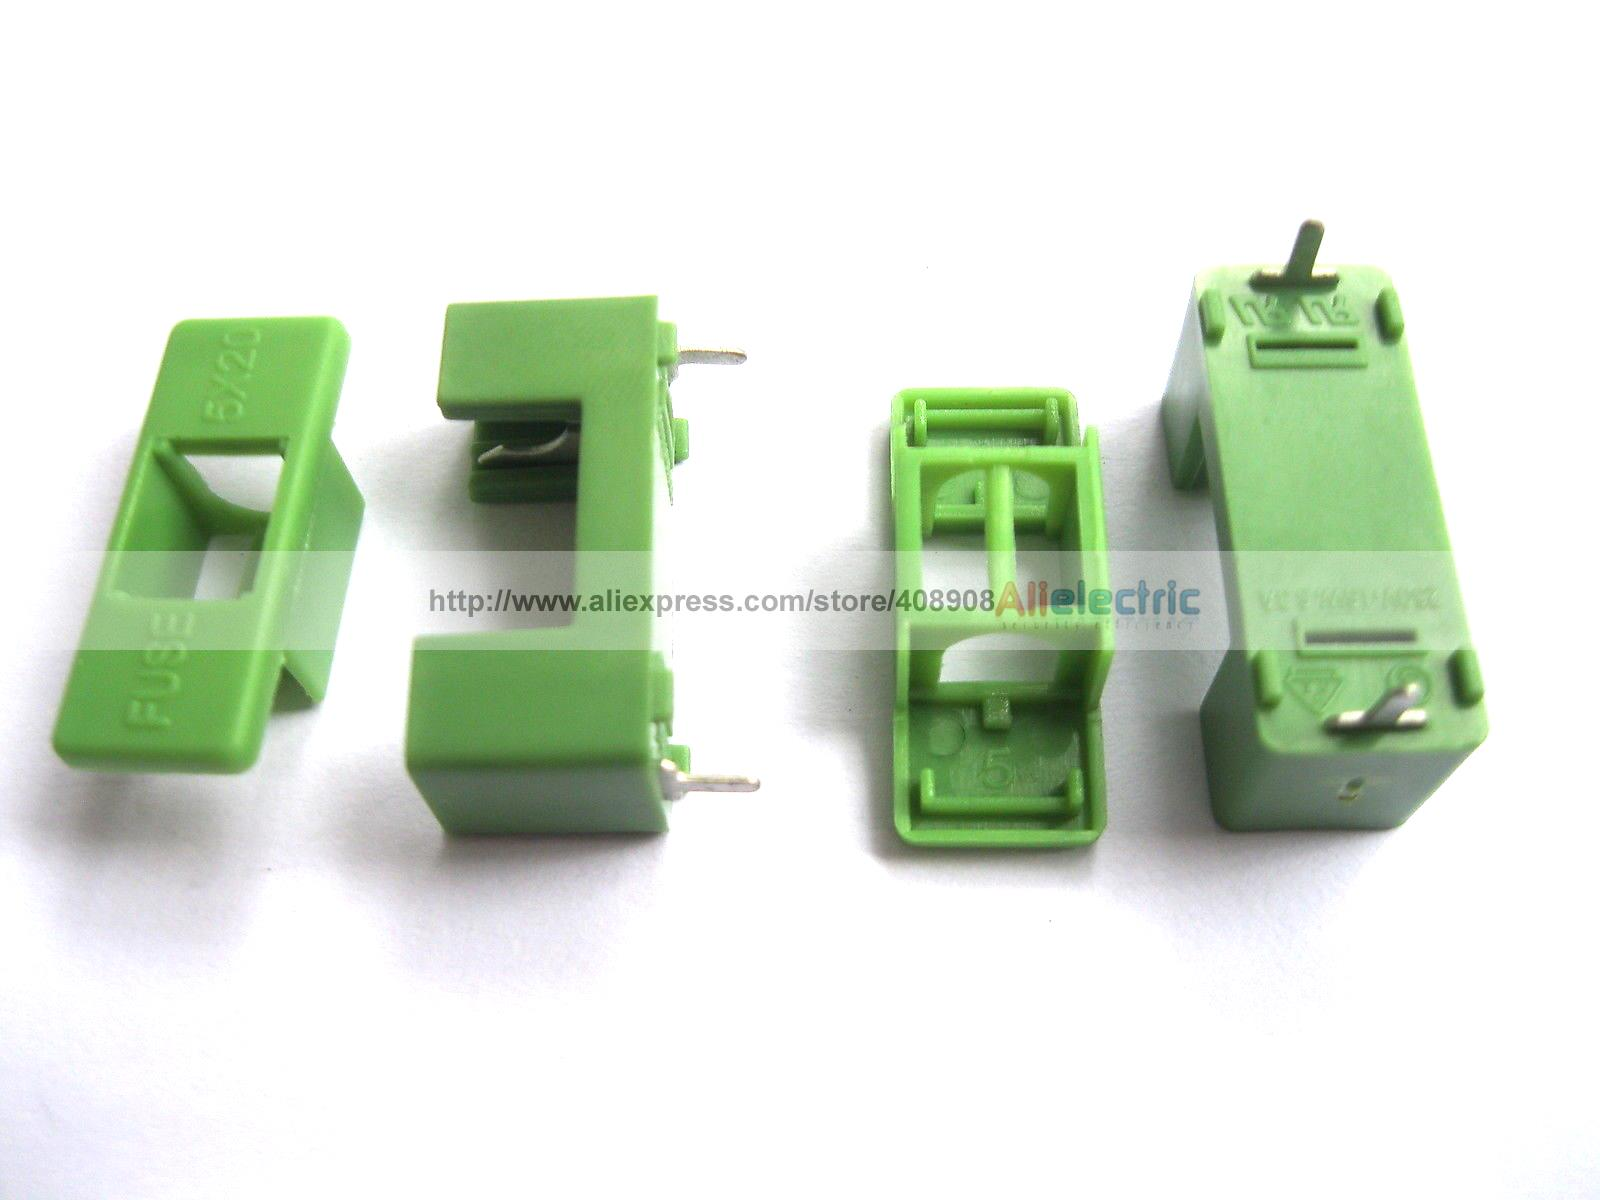 100 Pcs PTF 7 DIP Fuse Holder 6 3A 250V Used for 5x20 Green Color переходник hama jack 3 5 m jack 6 3 f стерео черный 00122388